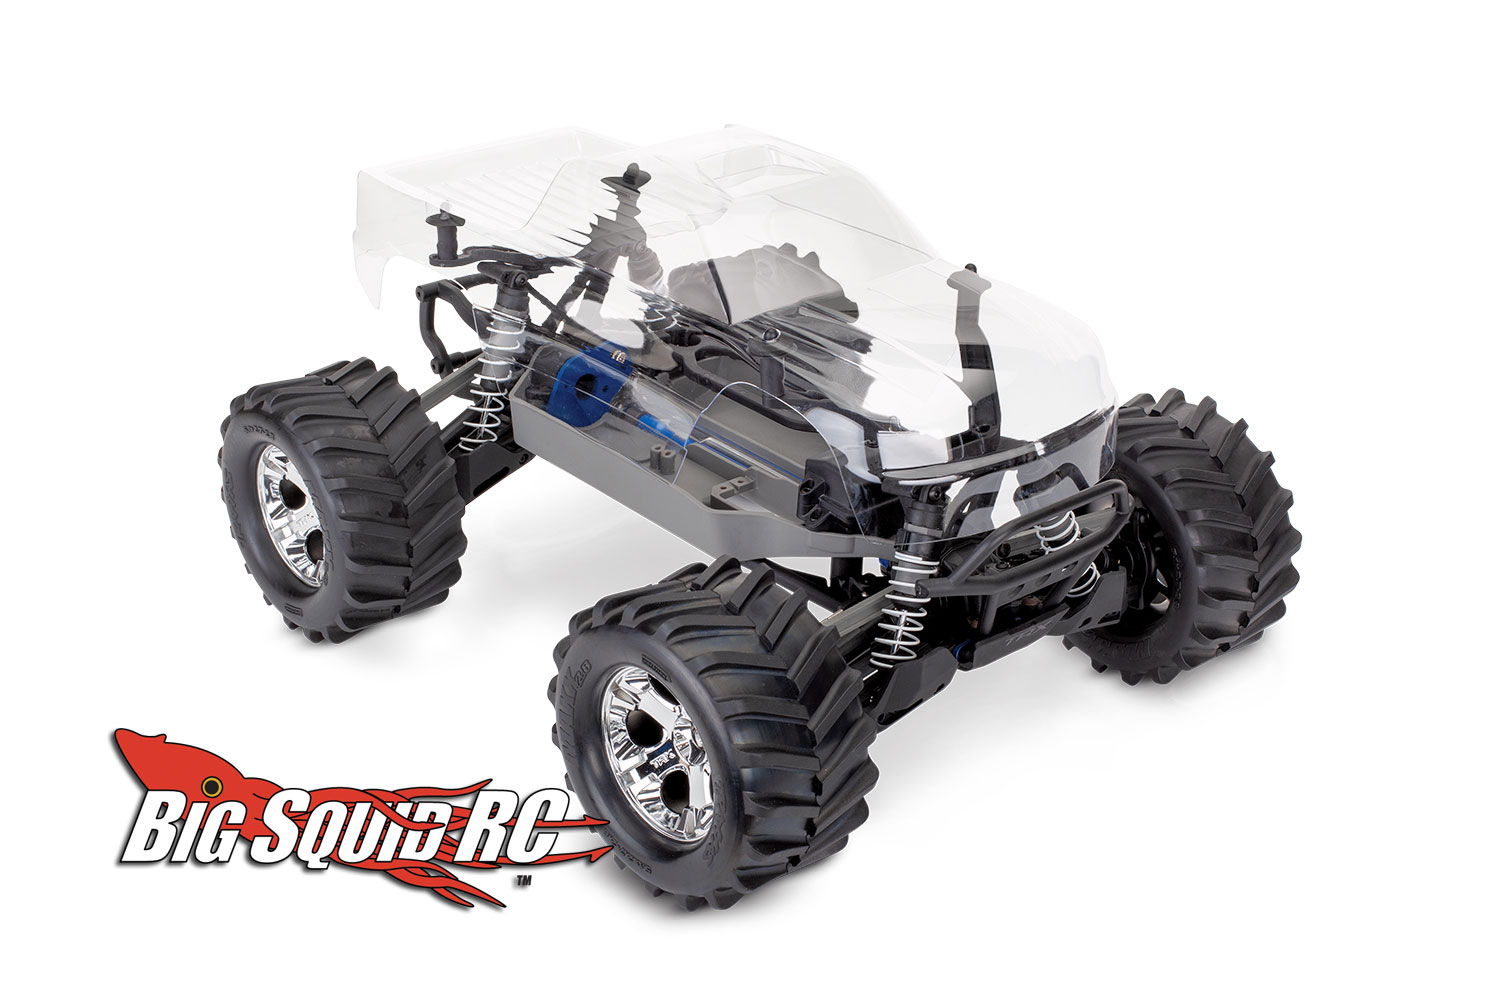 New Traxxas Stampede Kit Coming Soon 171 Big Squid Rc Rc